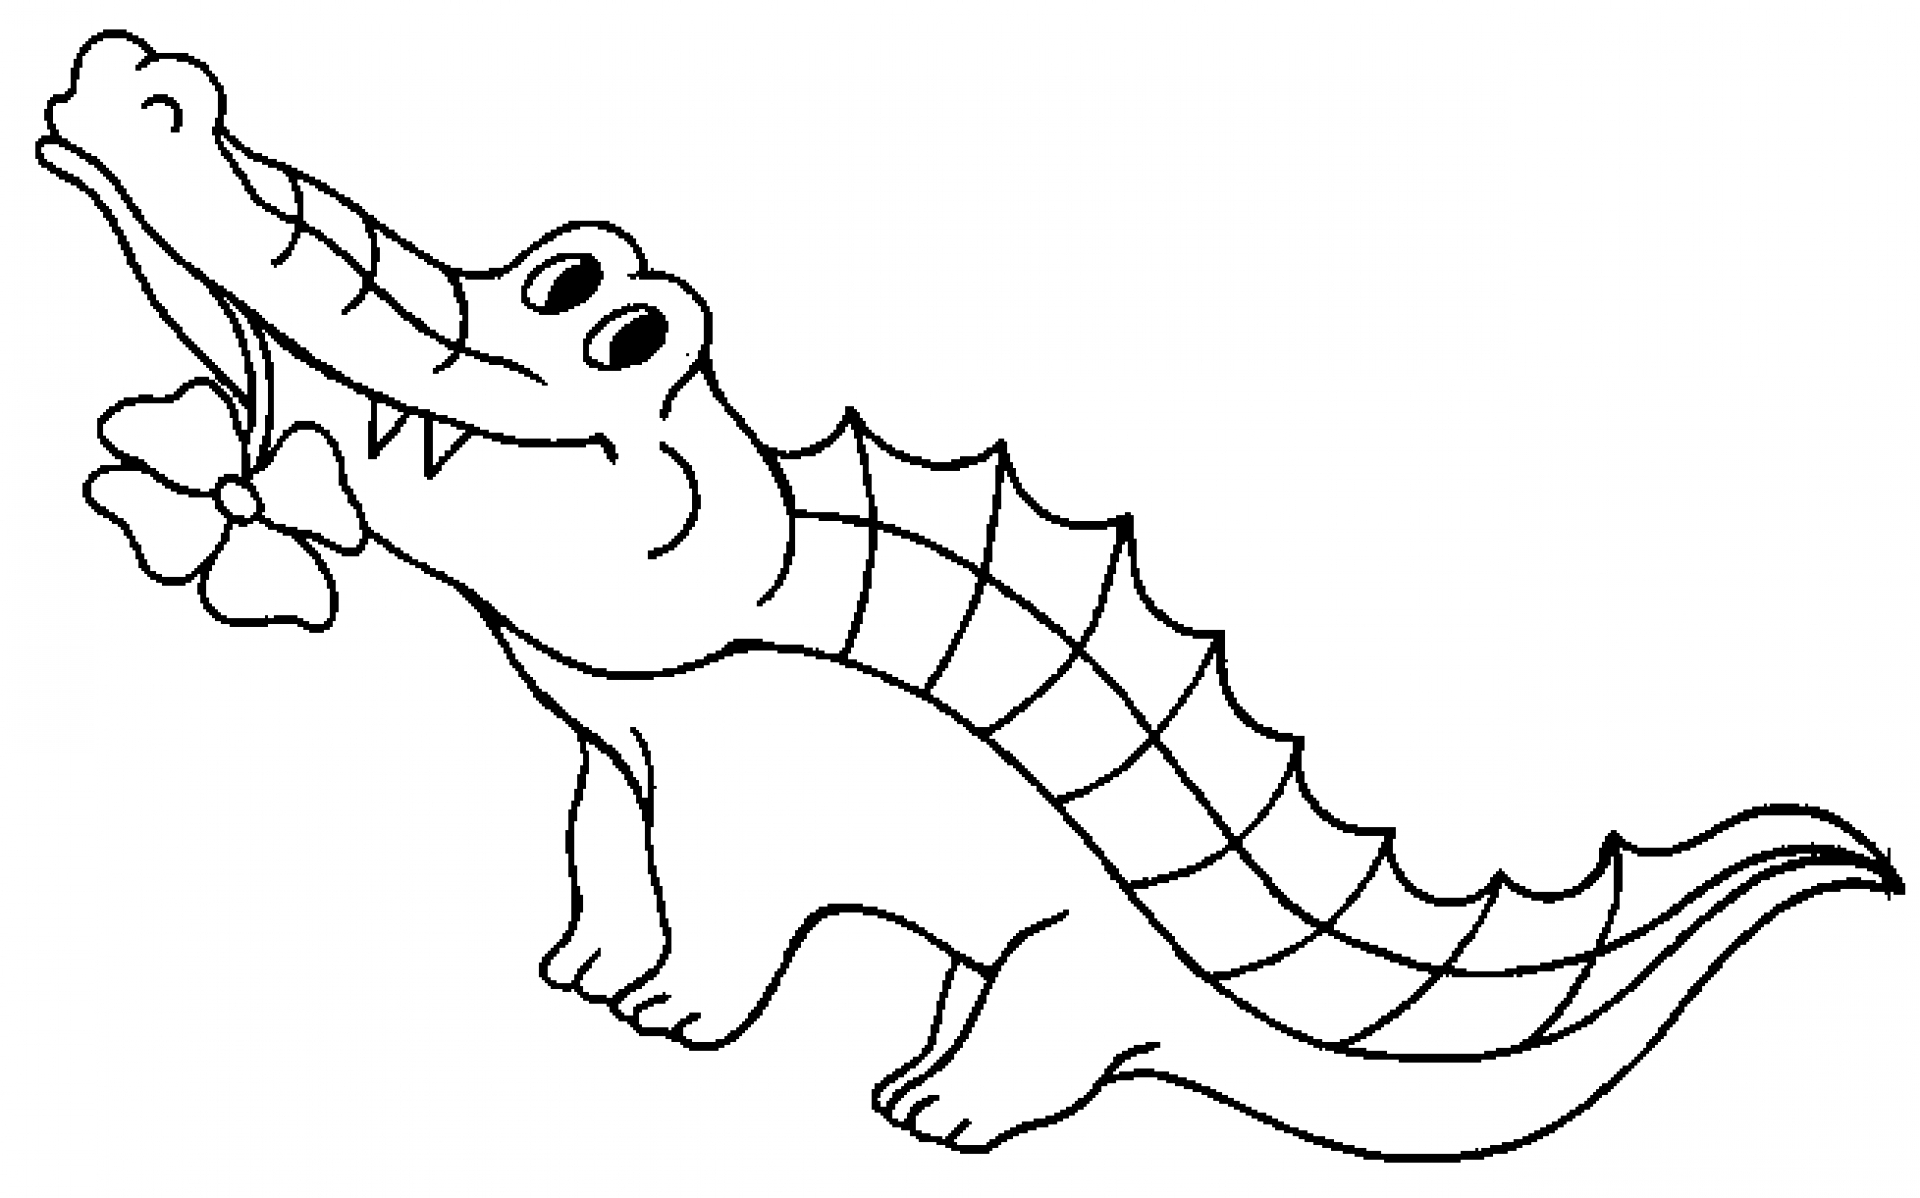 Alligator Clipart Black And White